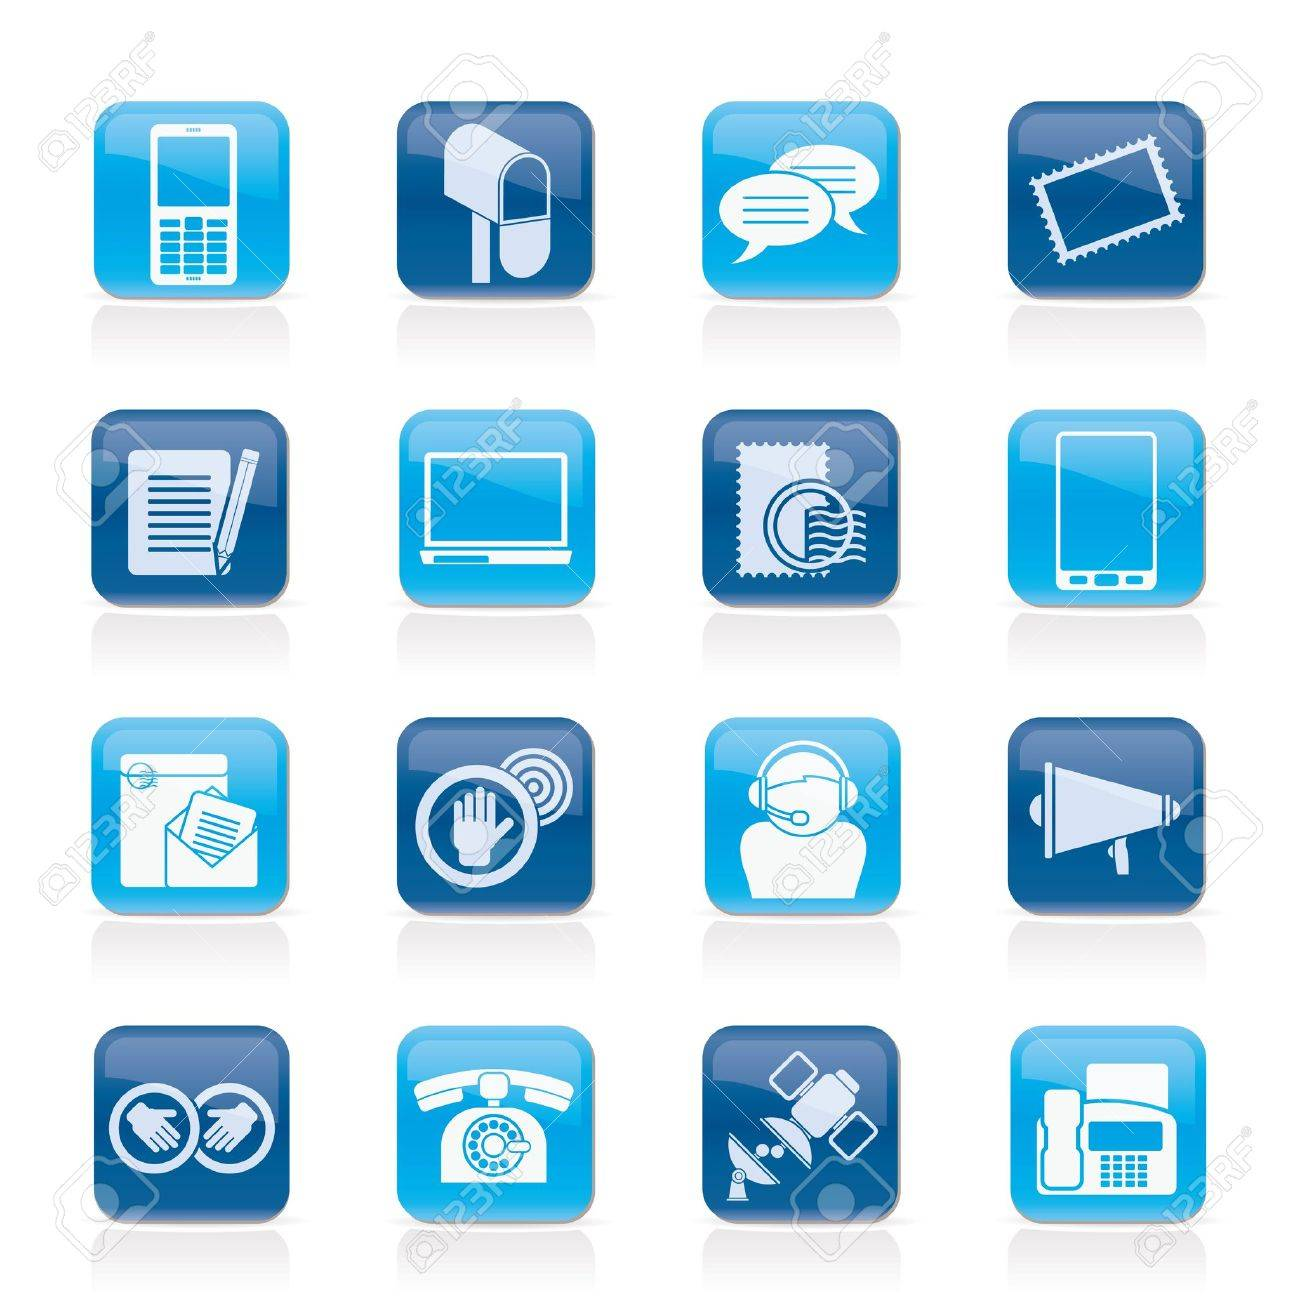 Contact and communication icons - vector icon set Stock Vector - 15073859